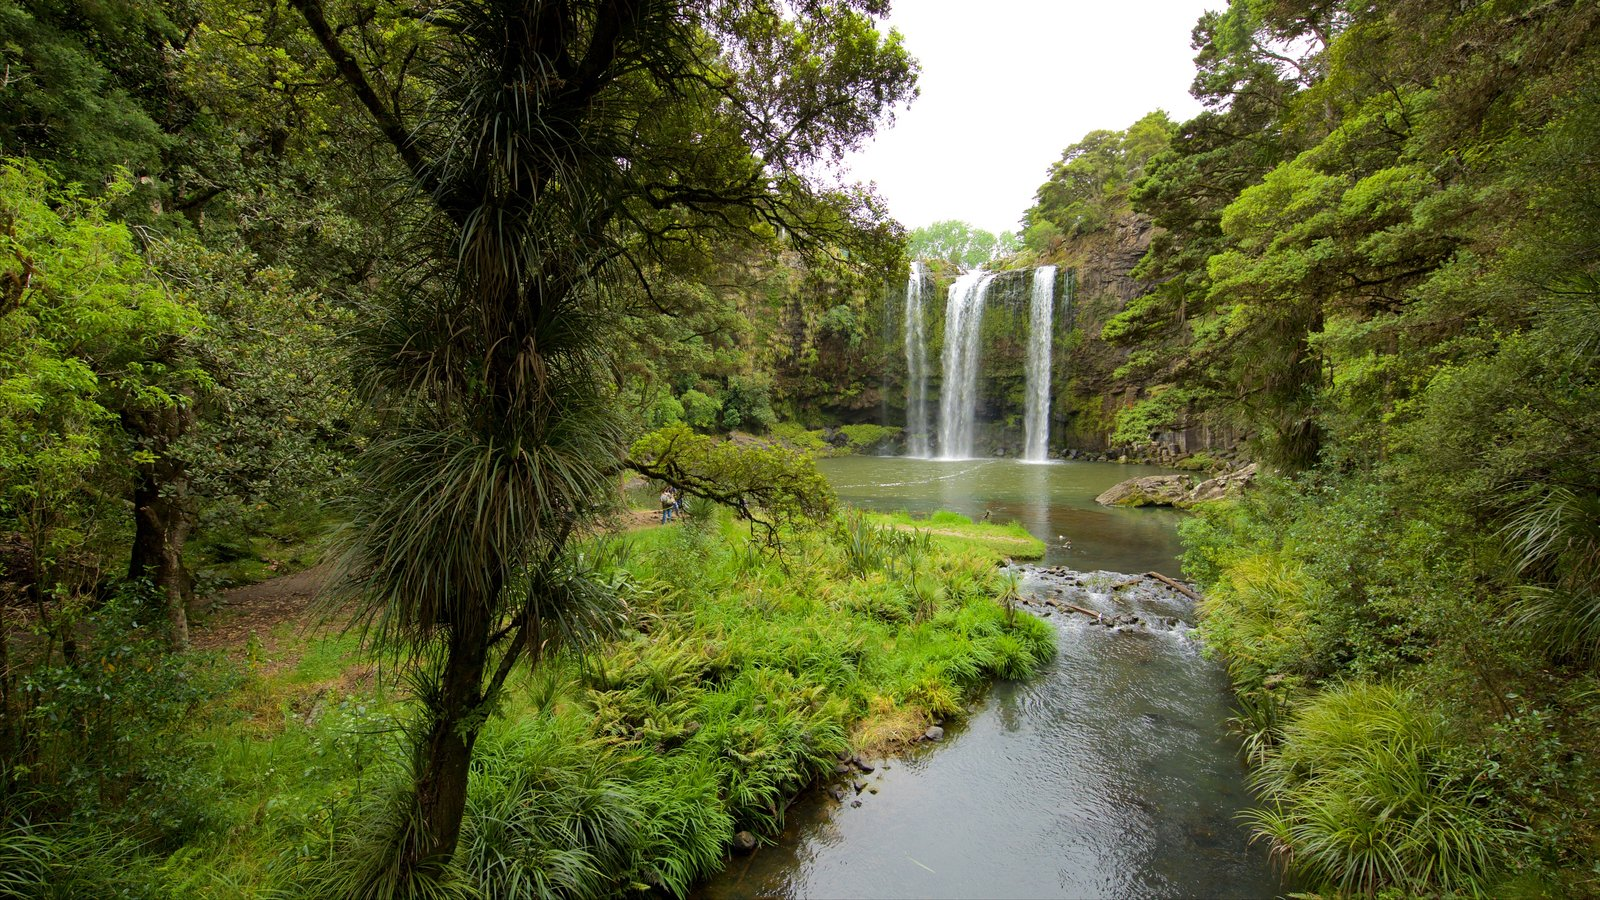 Whangarei Falls showing forests, a cascade and a river or creek